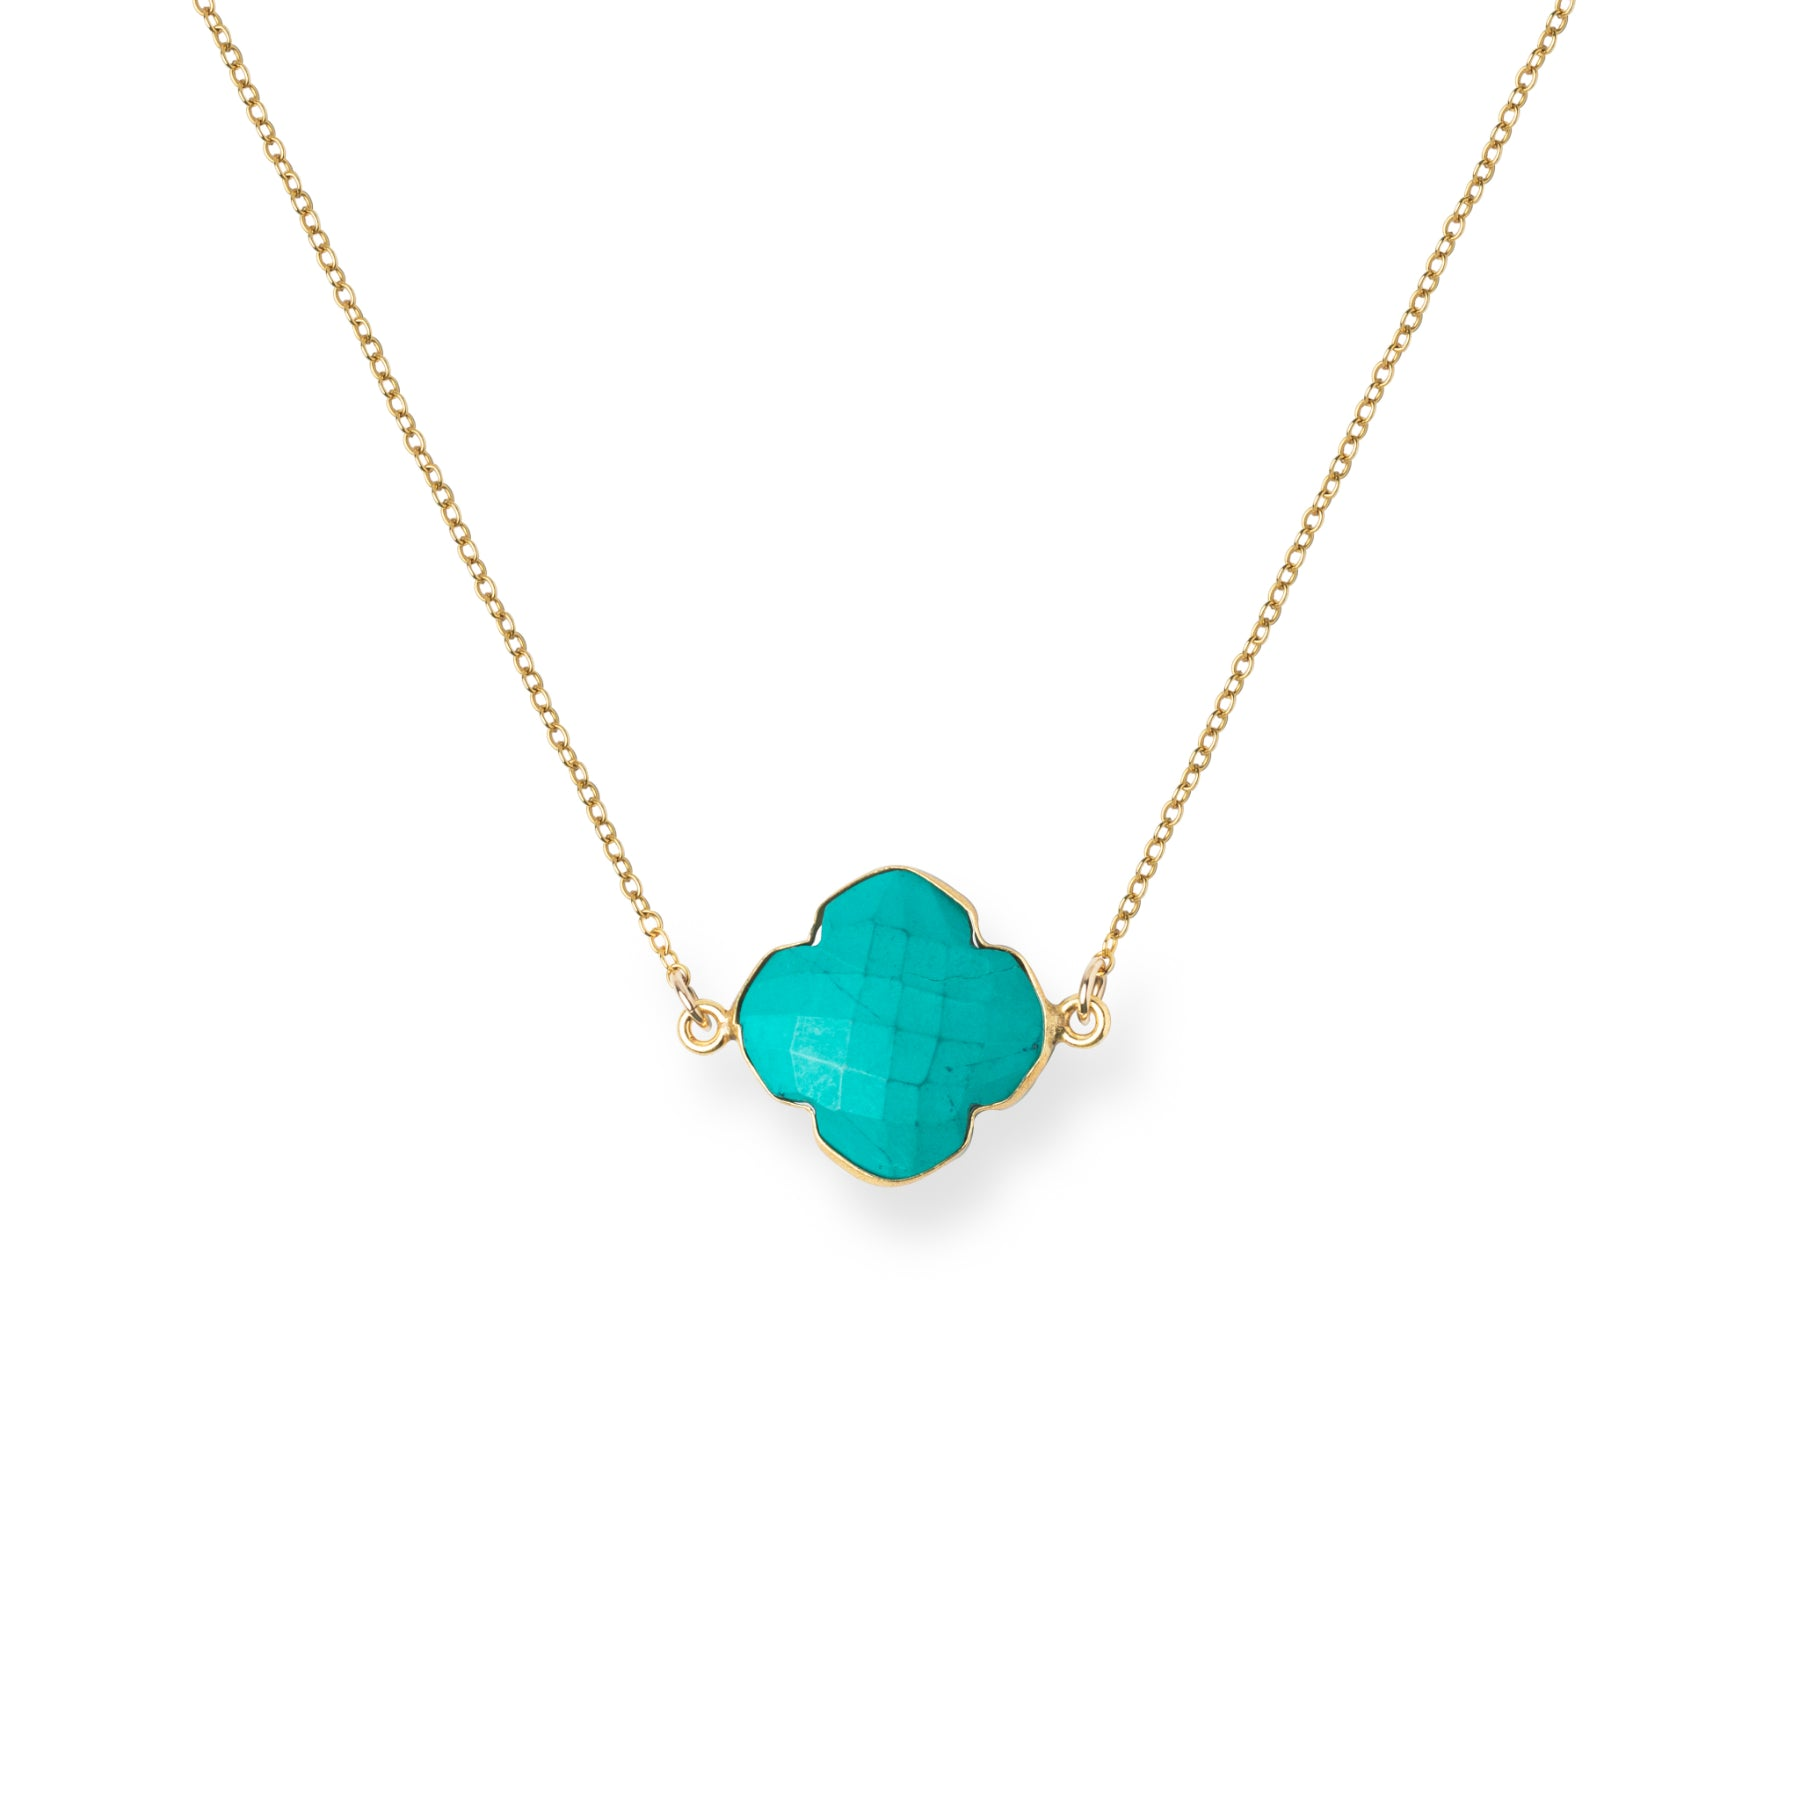 Close-up of Clover-shaped Turquoise and Gold Necklace 'I Am Complete' on White Background Product Photo by Asha Blooms